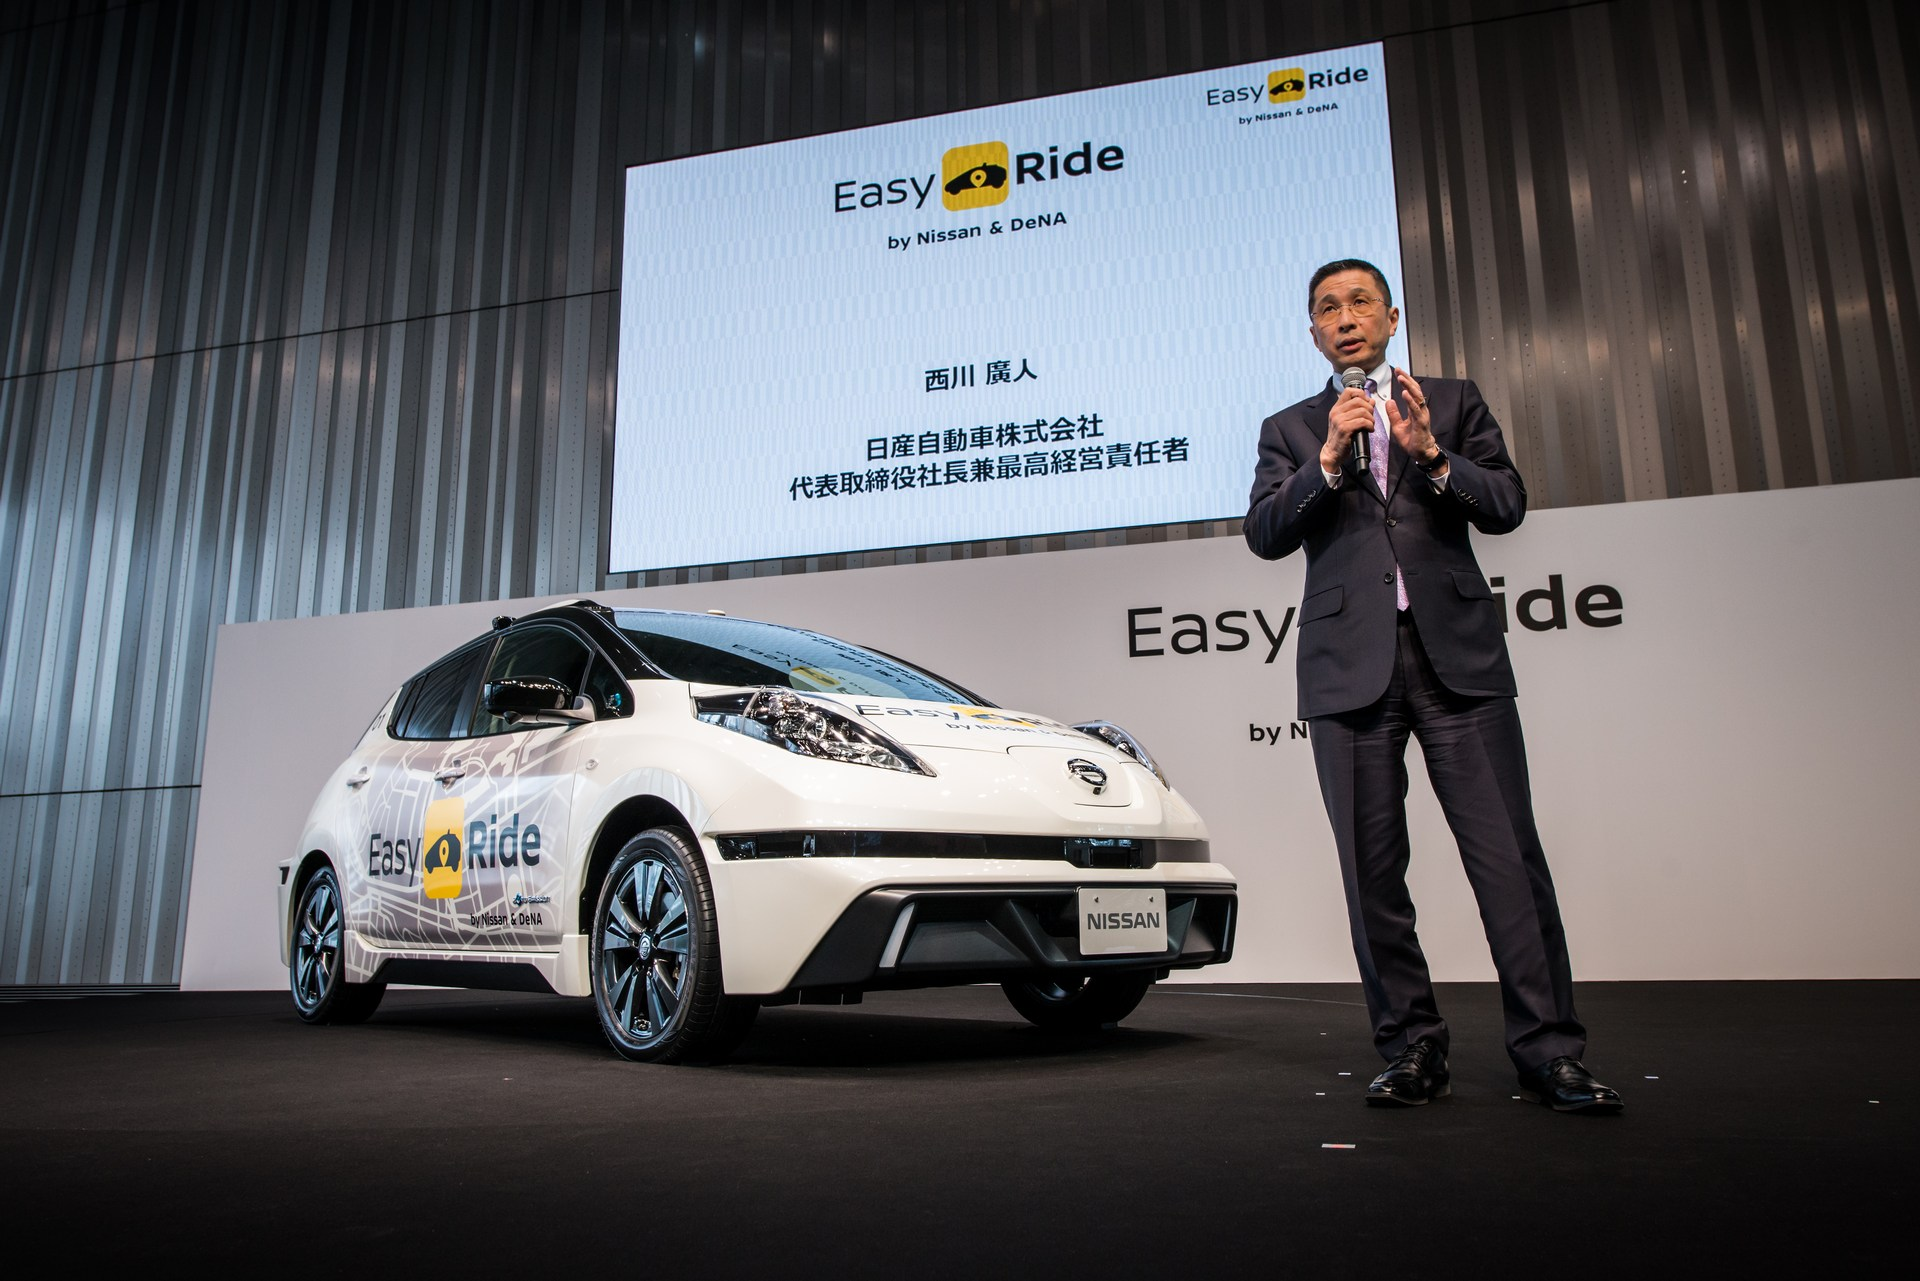 Nissan and DeNA to start Easy Ride robo-vehicle mobility service